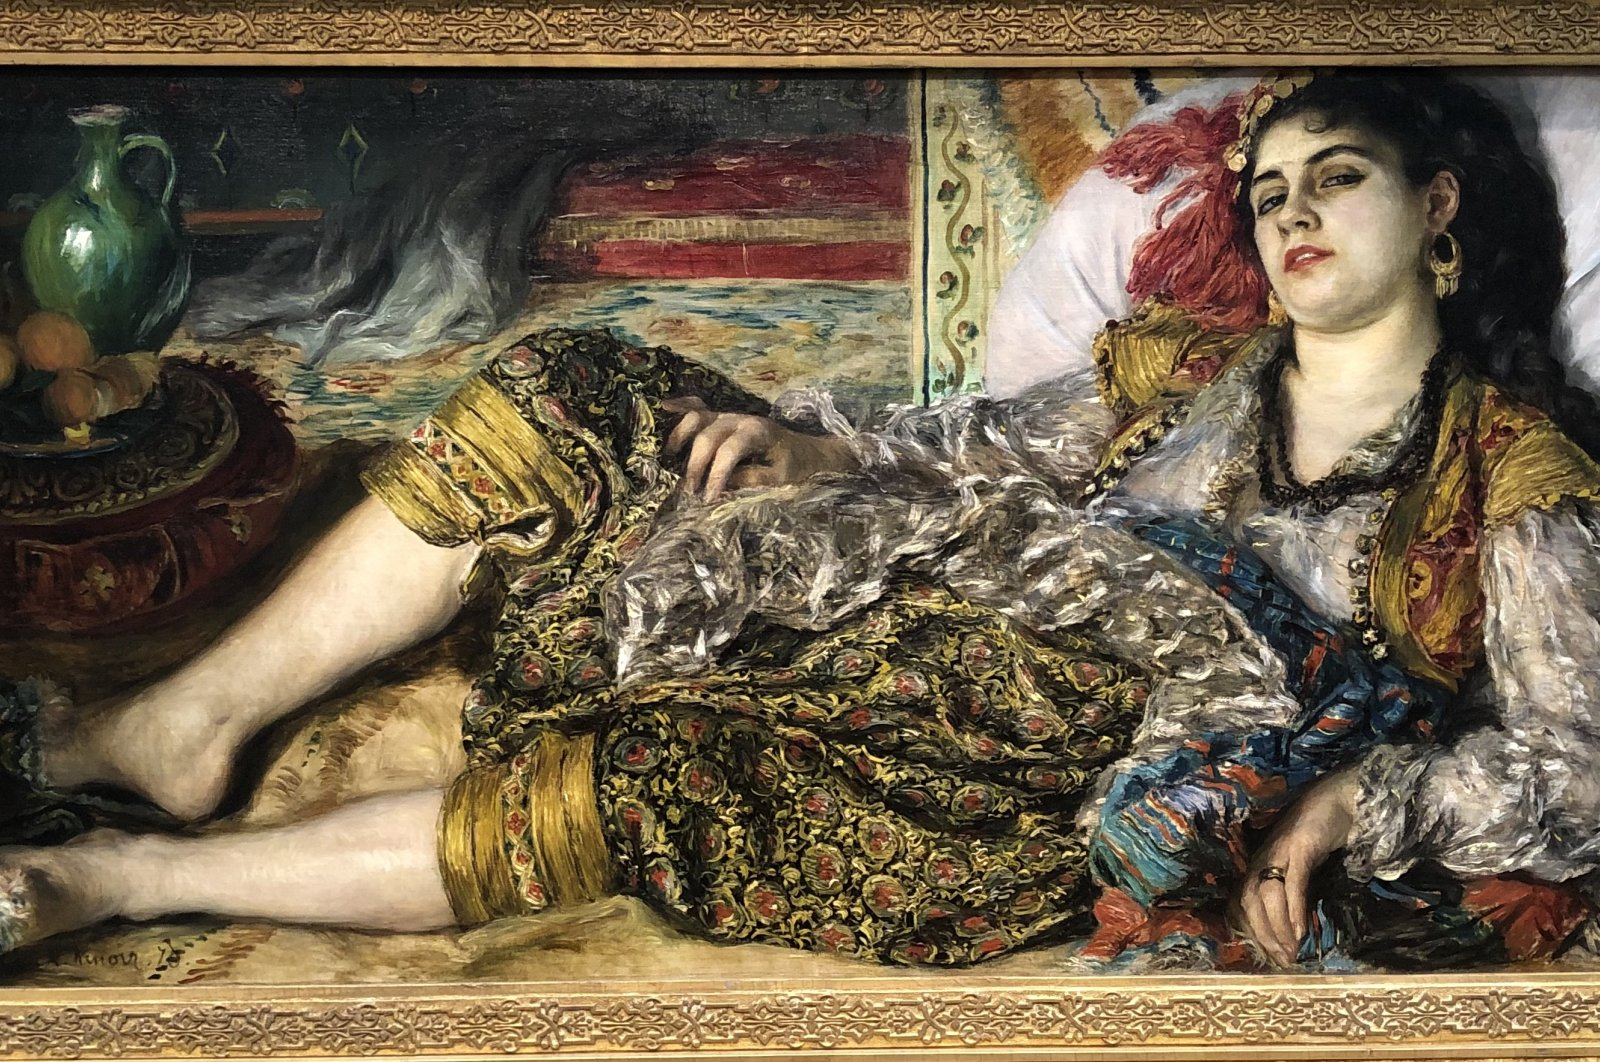 Orientalists of Washington: At the National Gallery of Art in DC